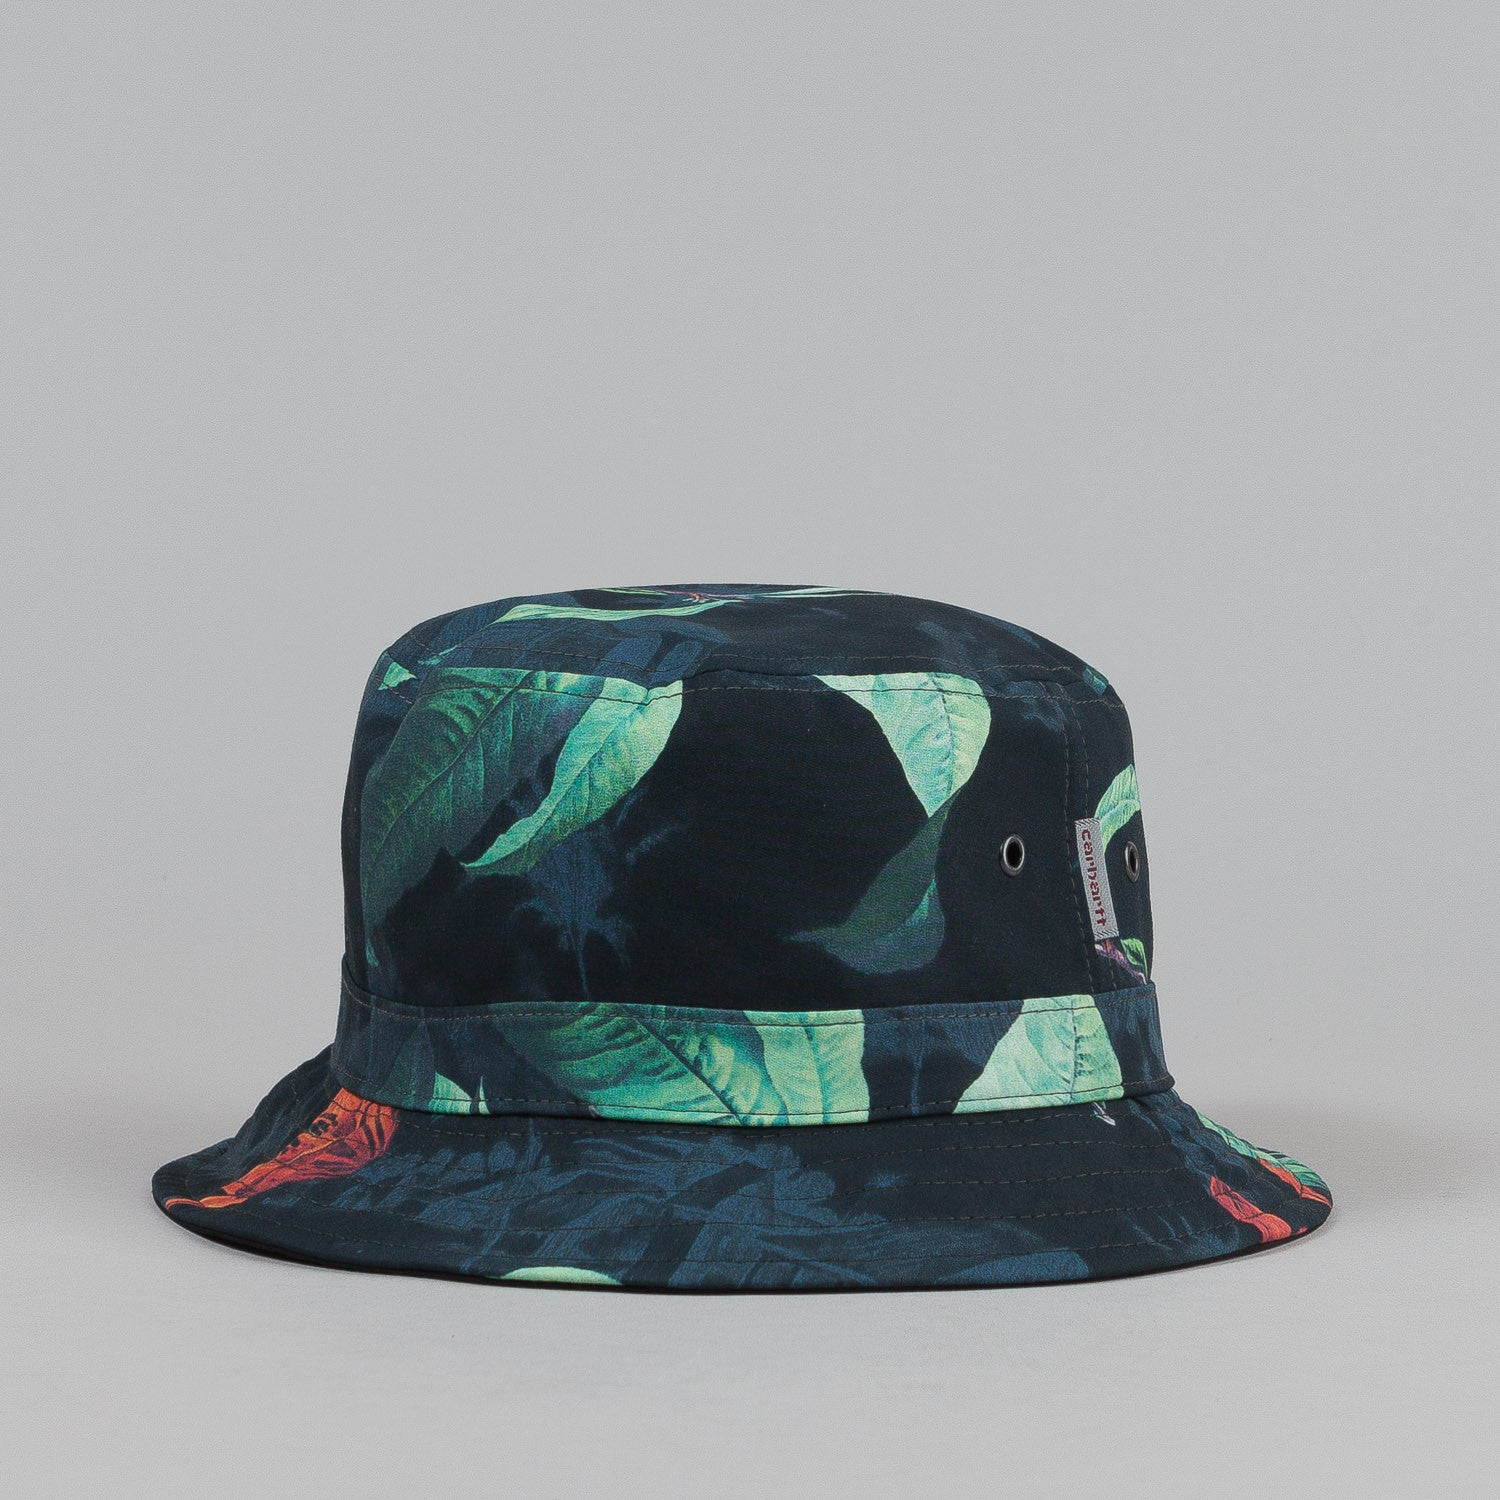 Carhartt Reversible Bucket Hat